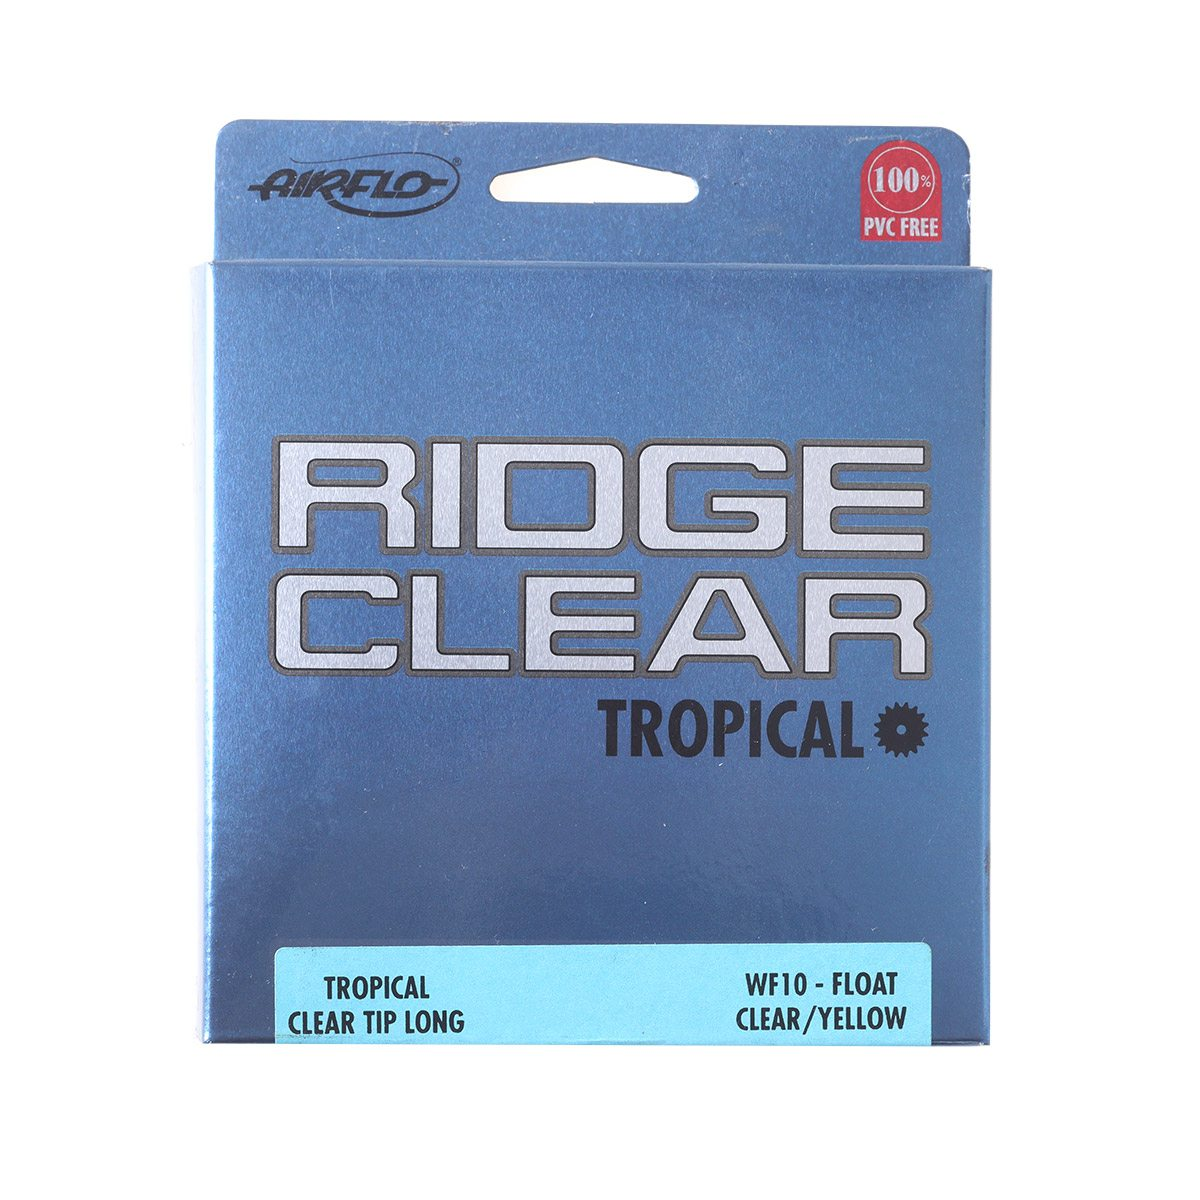 Airflo Clear Tip Long Tropical